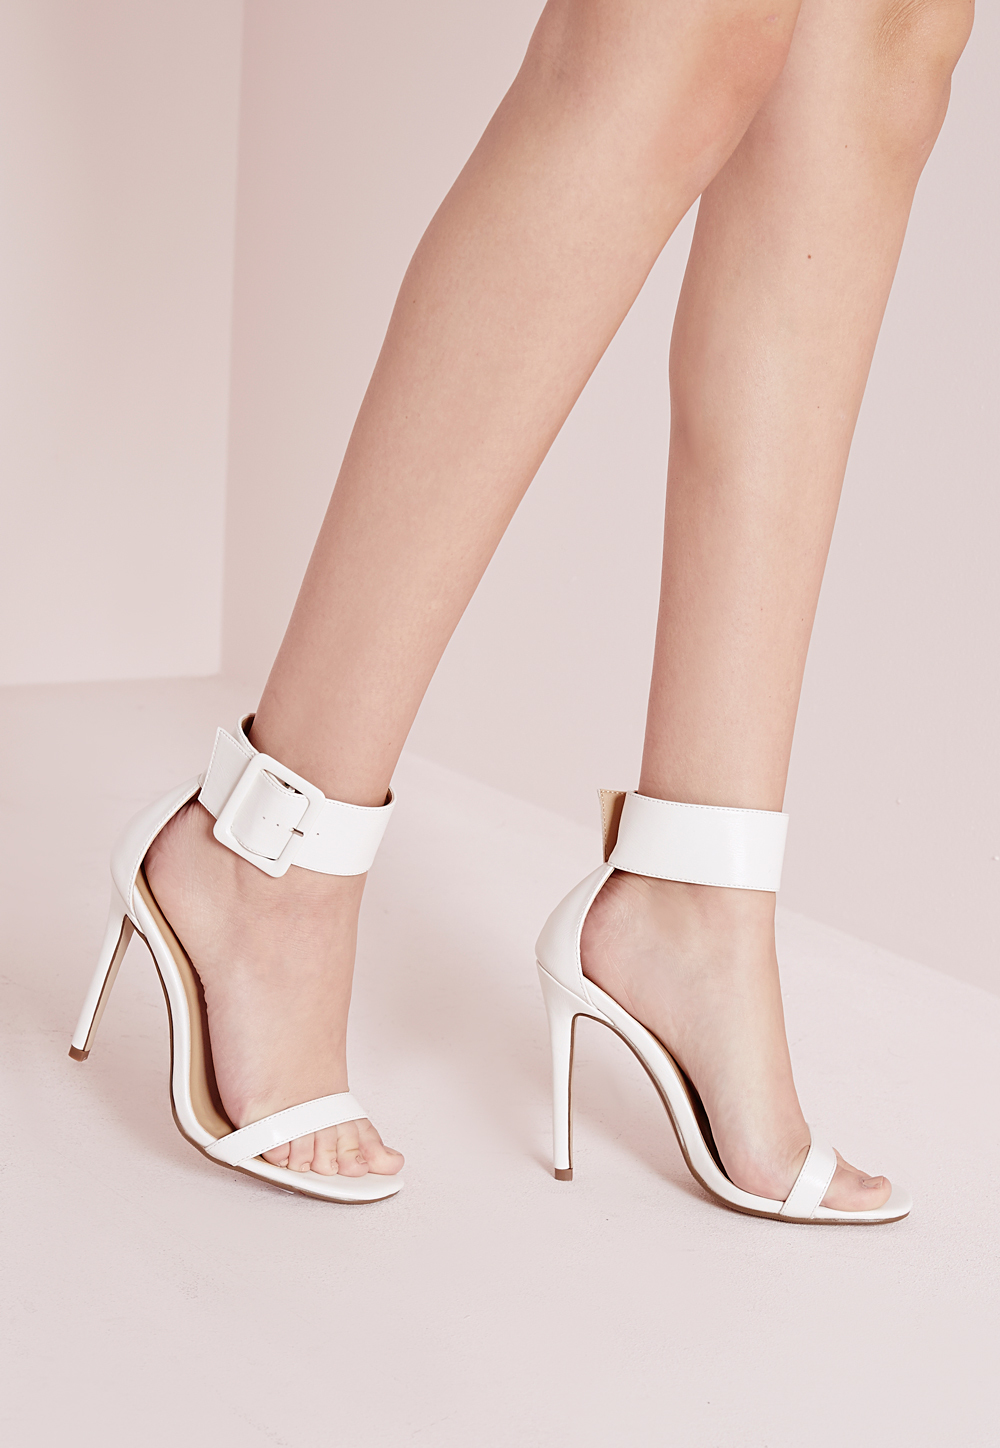 Buckle Trim Barely There Heeled Sandals White, White - predominant colour: white; occasions: evening, occasion; material: faux leather; heel height: high; embellishment: buckles; ankle detail: ankle strap; heel: stiletto; toe: open toe/peeptoe; style: standard; finish: plain; pattern: plain; season: s/s 2016; wardrobe: event